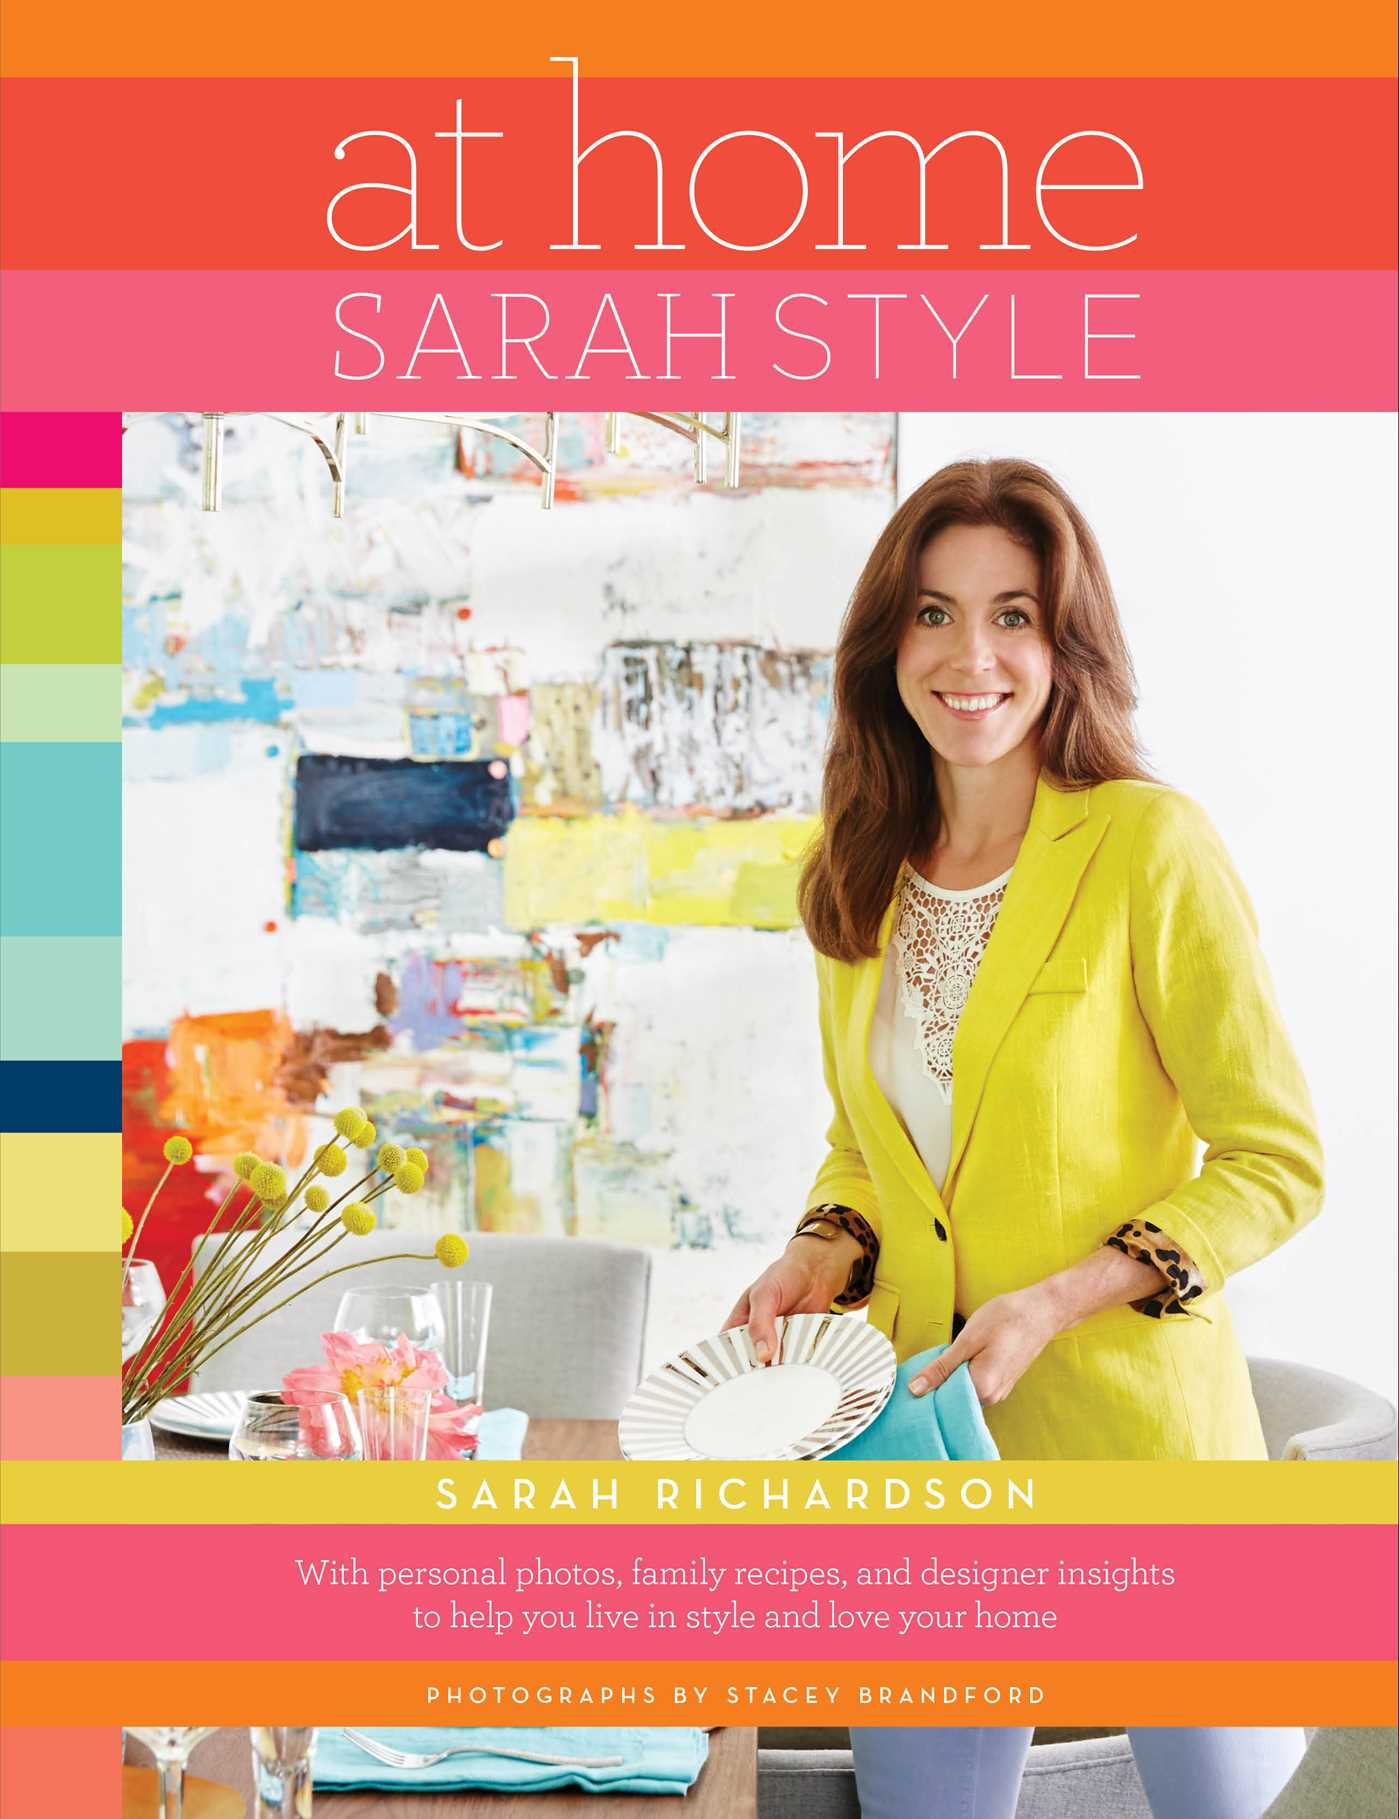 At home sarah style 9781501119491 hr